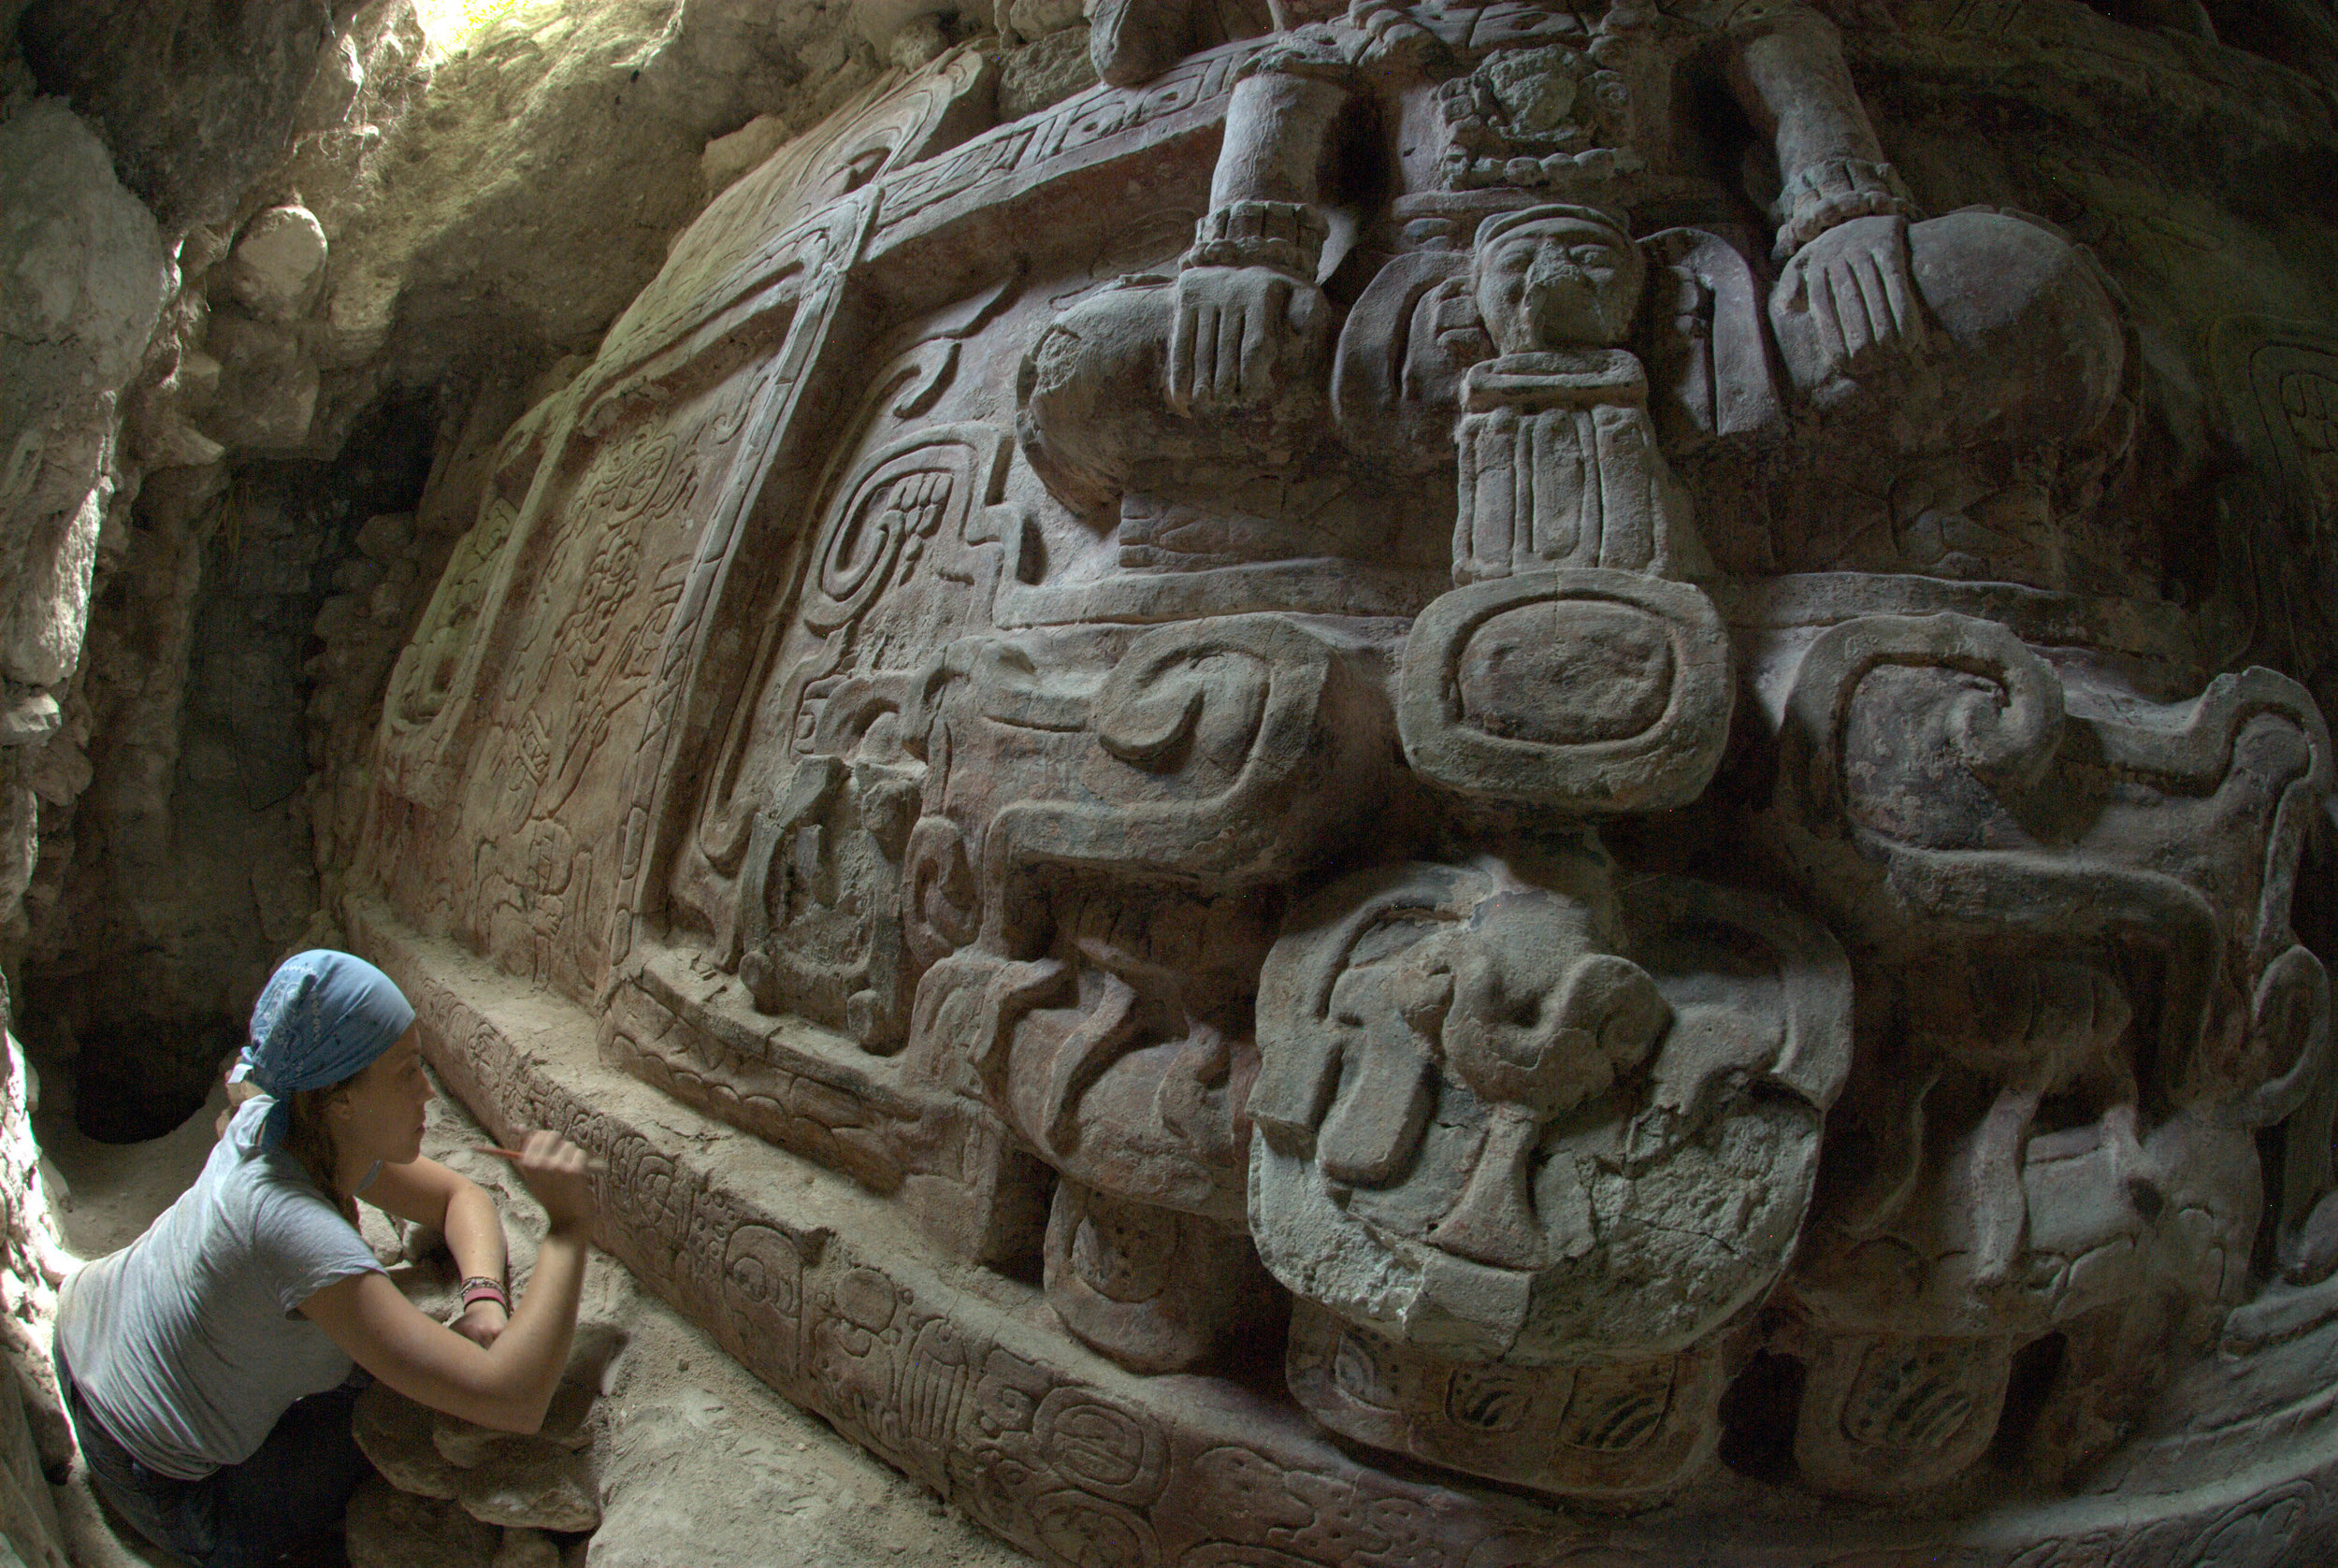 Archaeologist Anya Shetler cleans an inscription below an ancient stucco frieze recently unearthed in the buried Maya city of Holmul in the Peten region of Guatemala. (Photo: cbsnews.com)